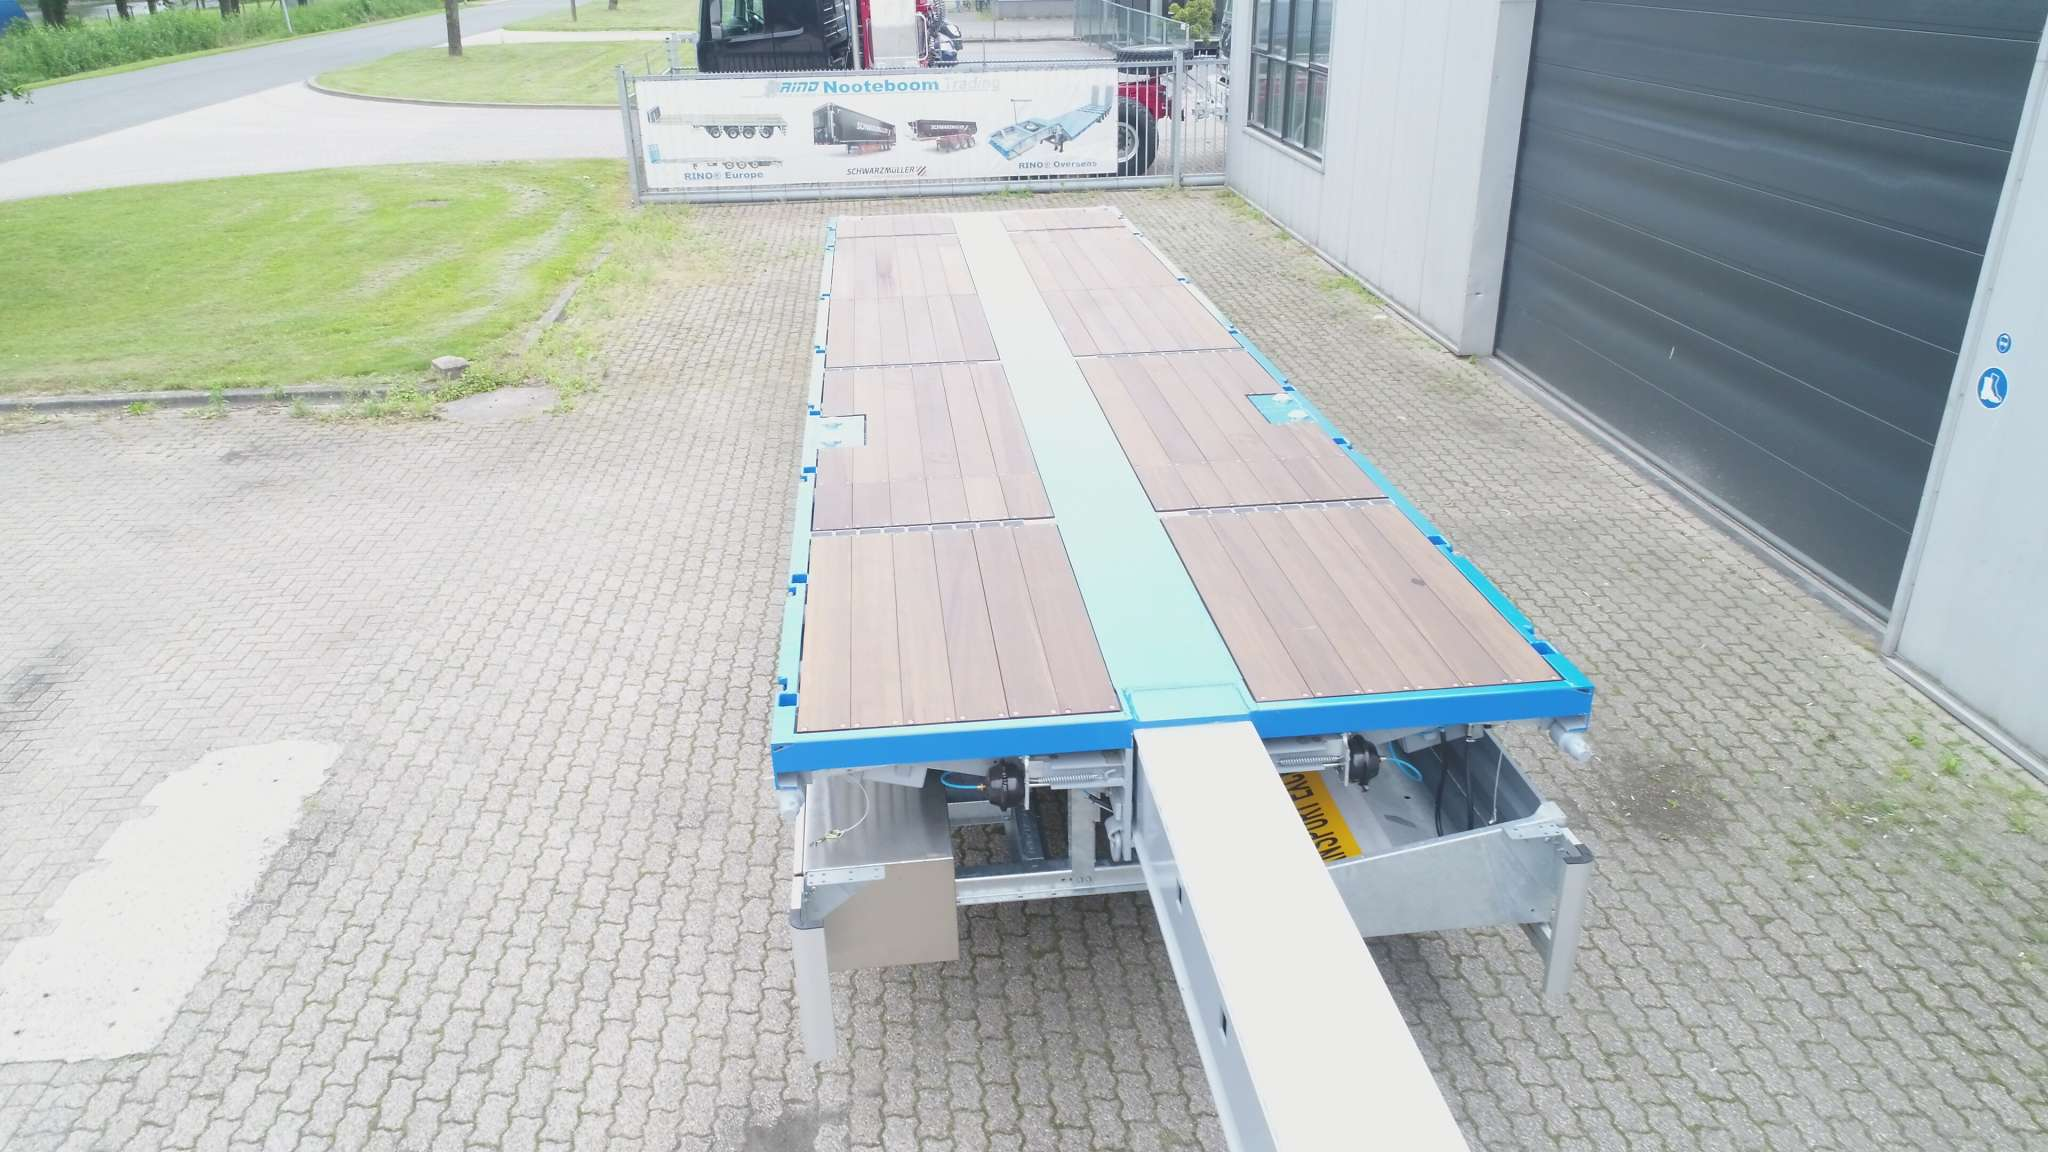 FOR RENT: 3 AXLE FLATBED TRAILER // 3 AXLES HYDRAULIC STEERING // EXTENDABLE TILL 28,8 M // PAYLOAD 35 T // KINPIN HEIGHT 1160 MM